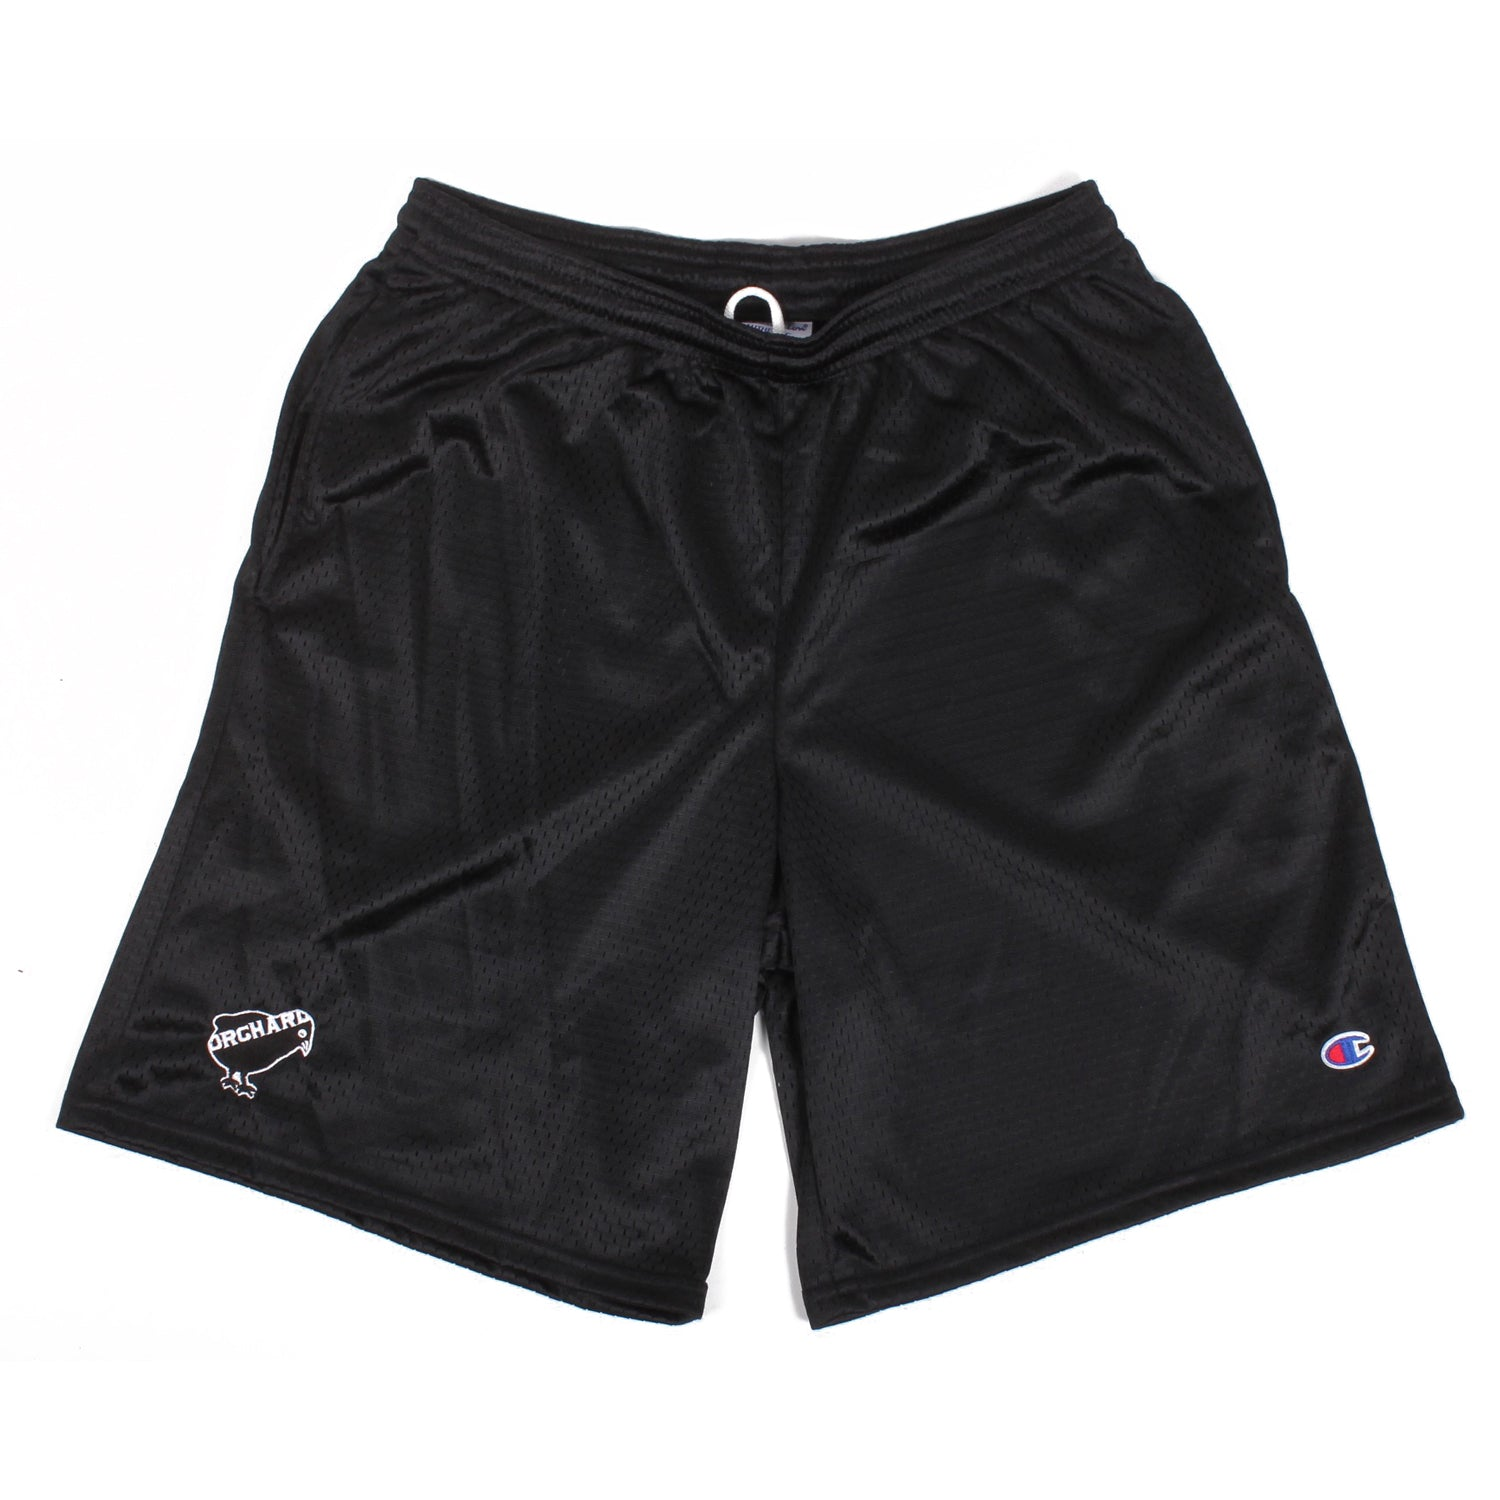 Orchard Mesh Shorts Emb. Bird Black